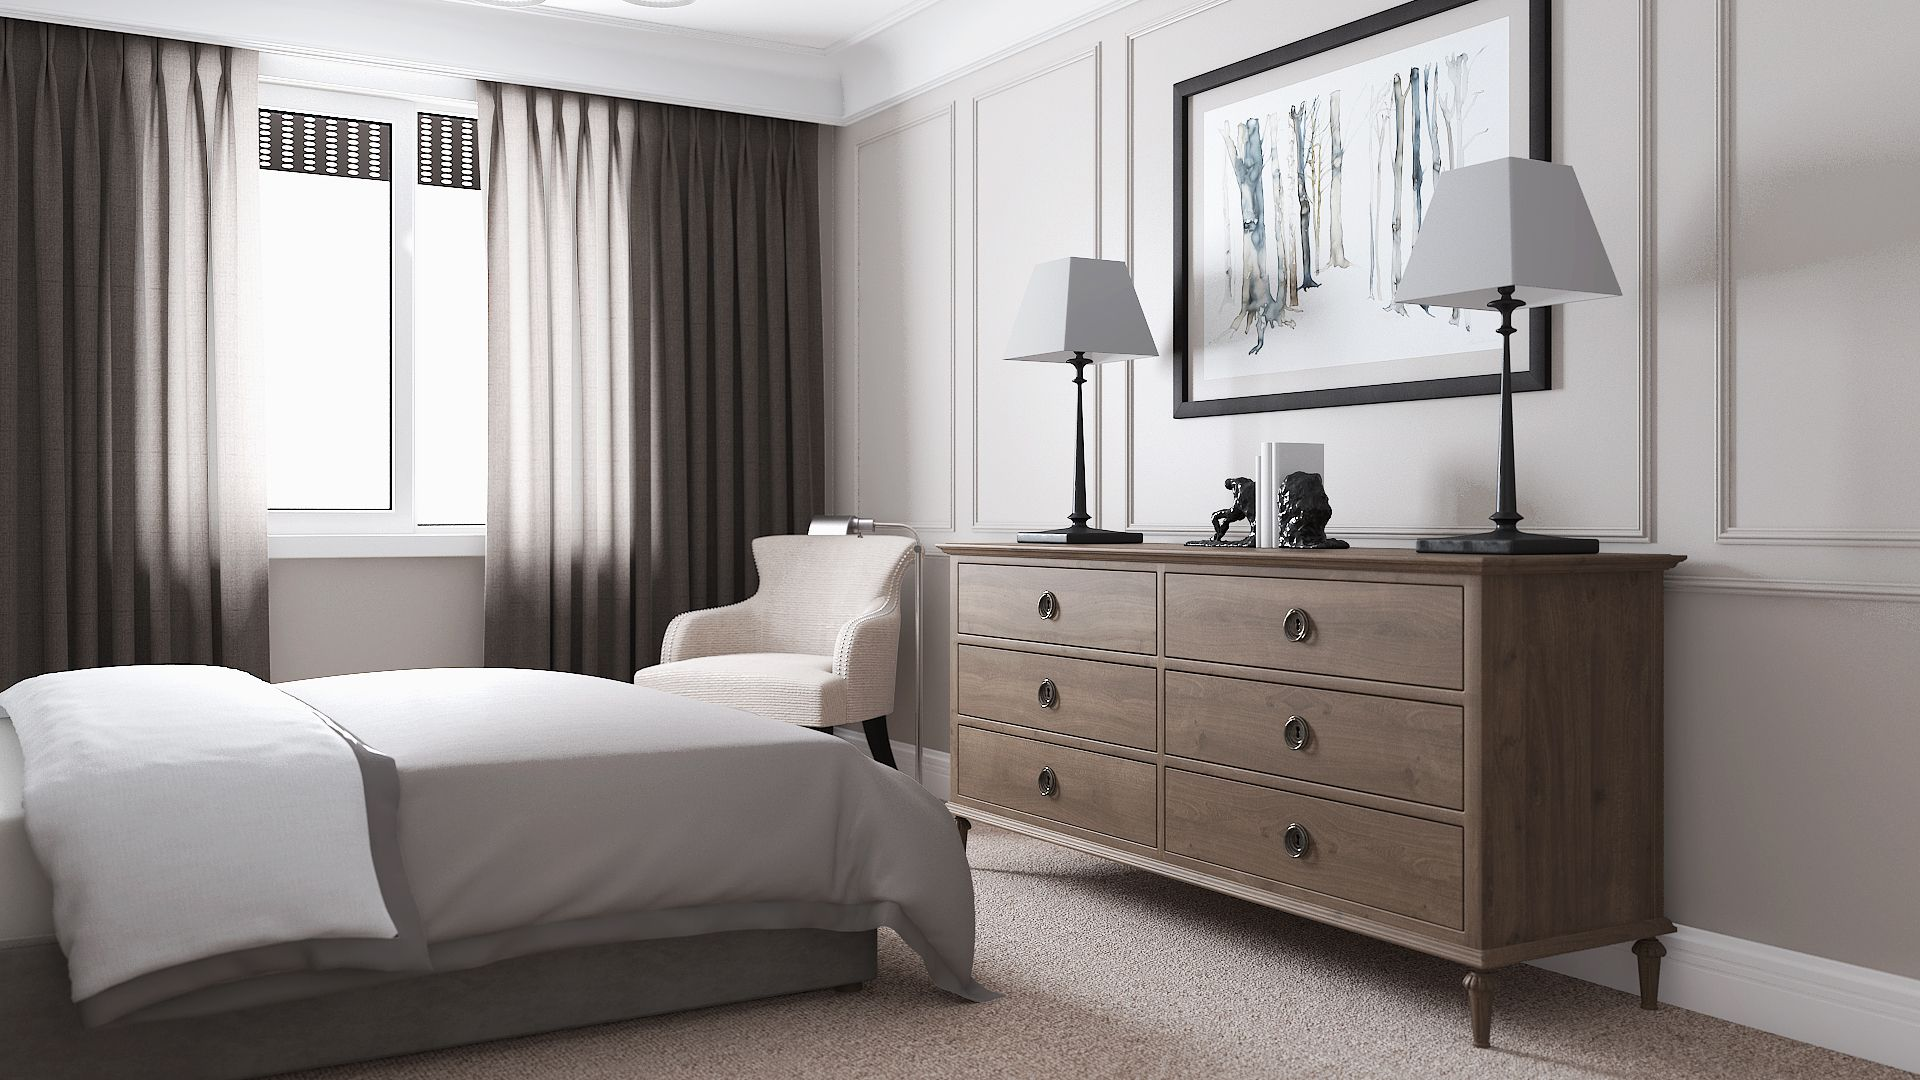 in Reach Chaise Lounge-3D | Home bedroom, Dresser as nightstand ...